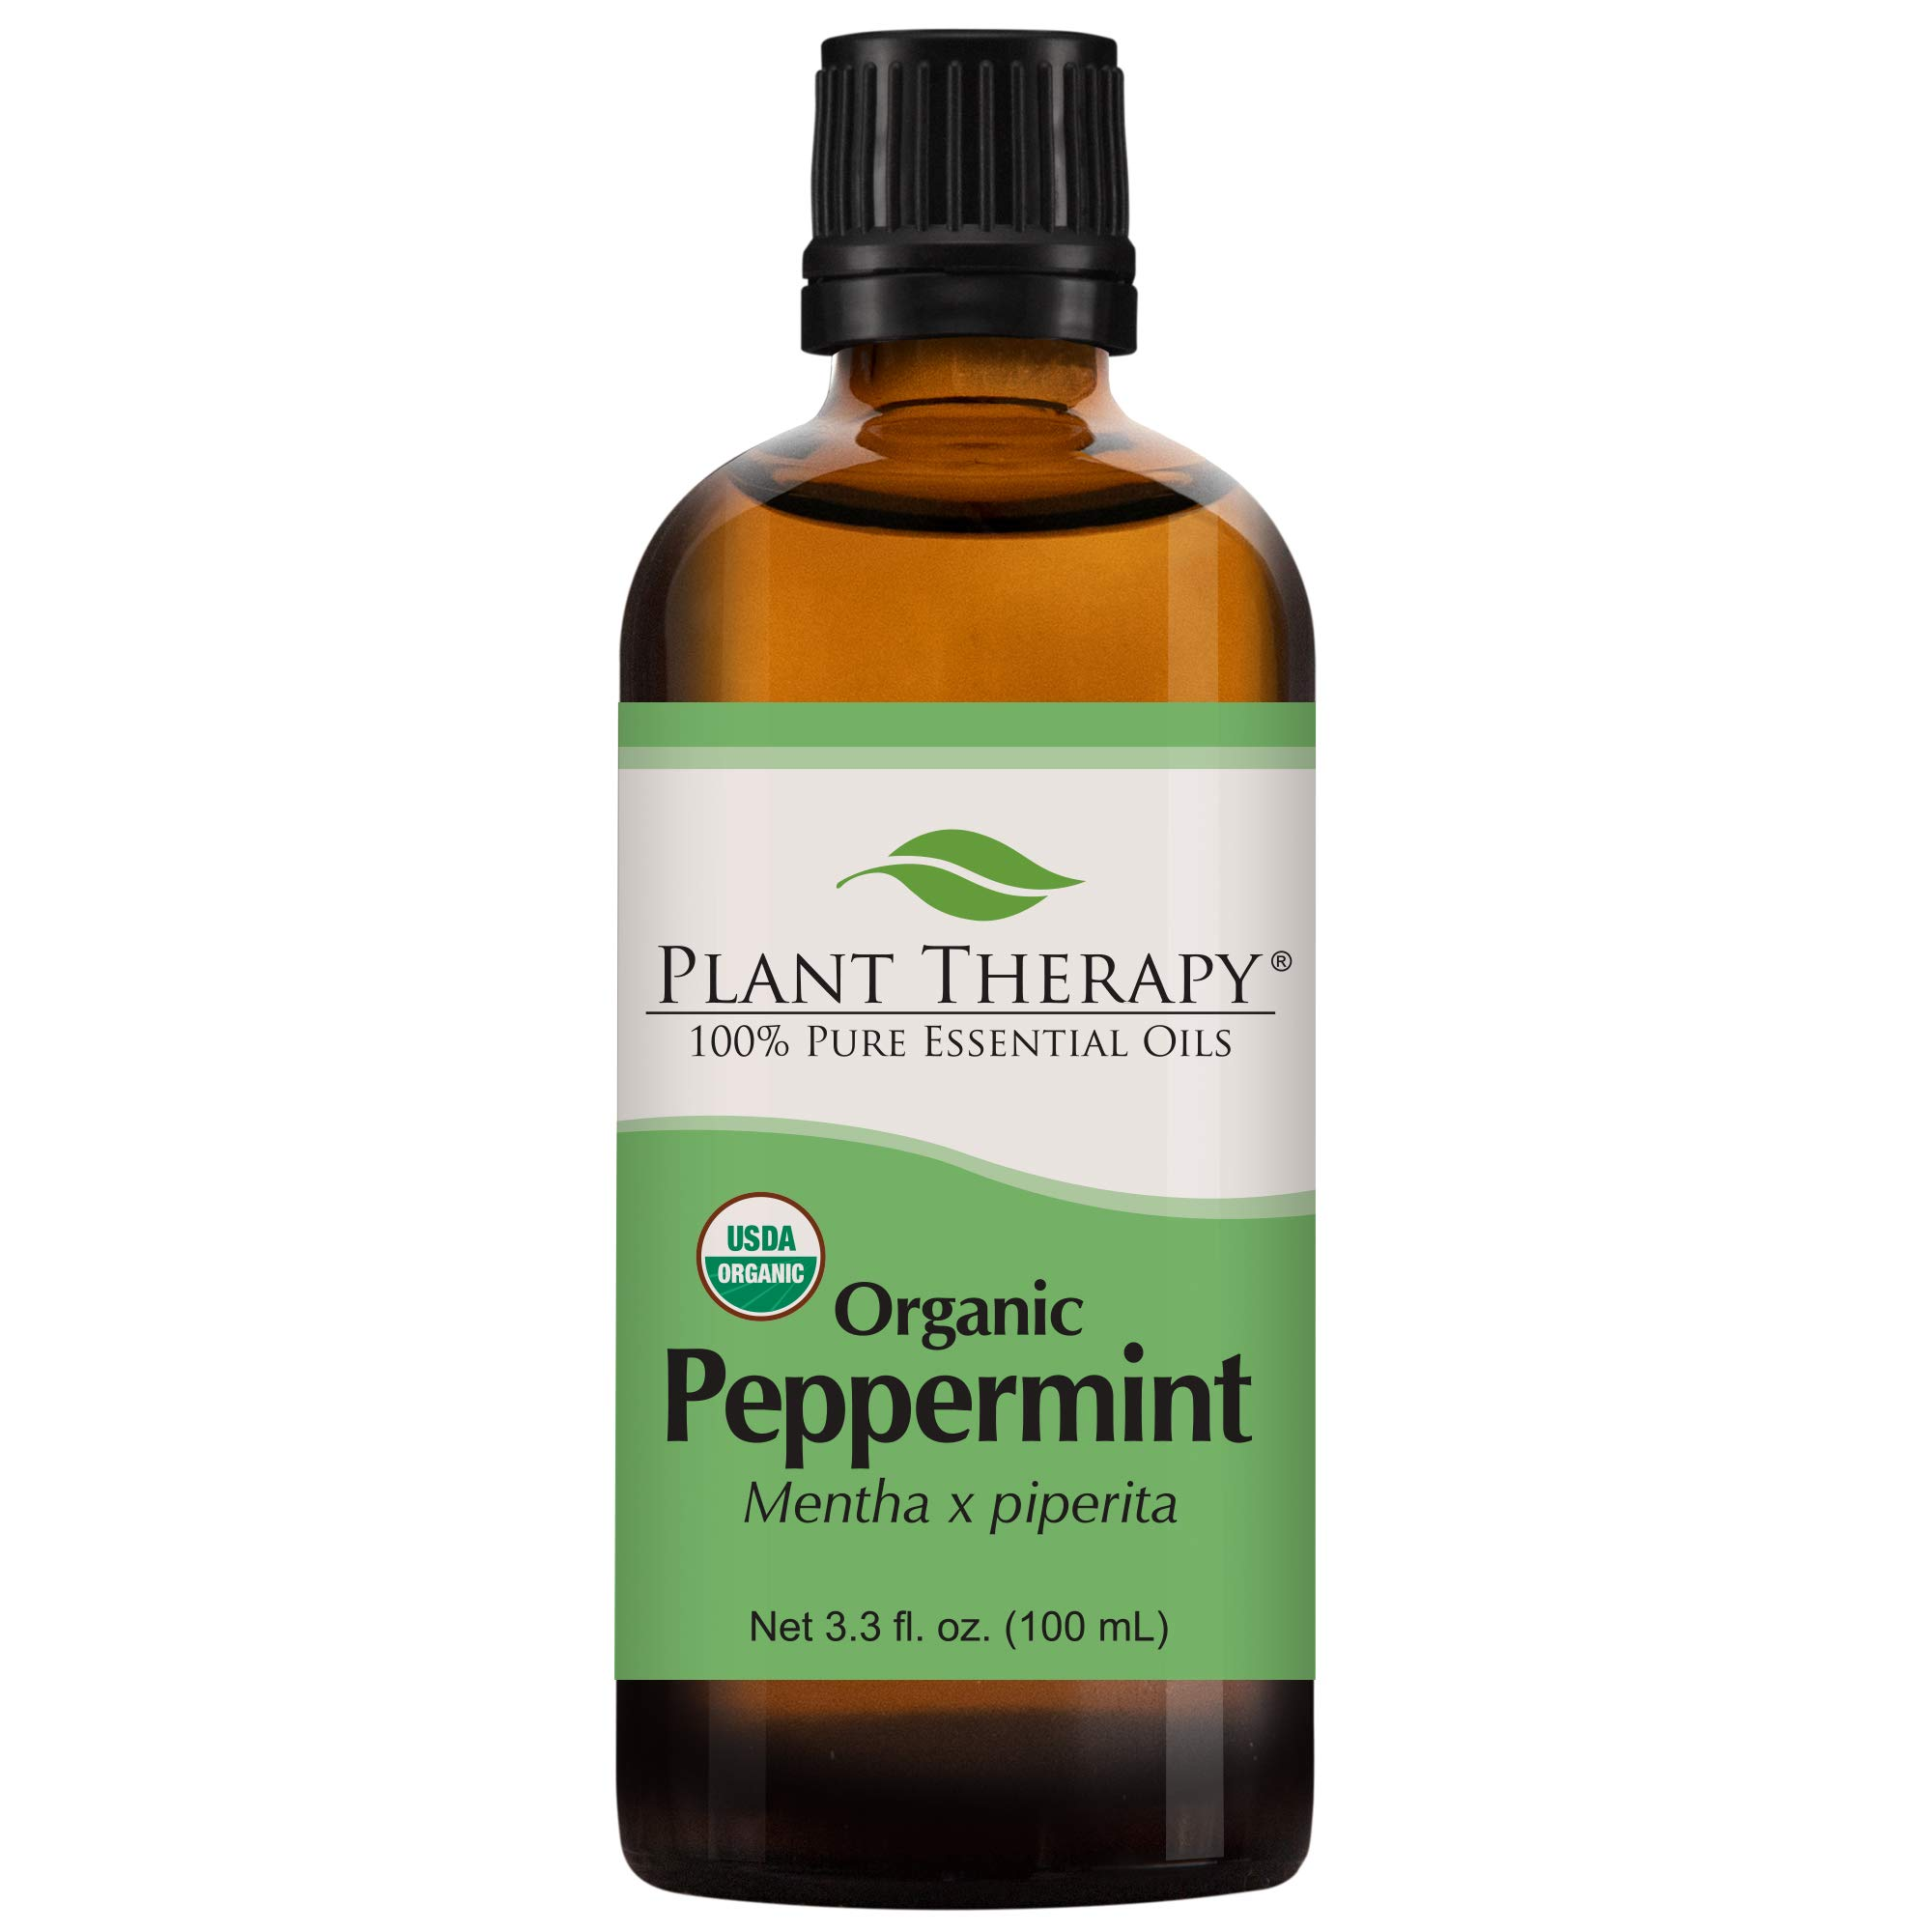 Plant Therapy Peppermint Organic Essential Oil | 100% Pure, USDA Certified Organic, Undiluted, Natural Aromatherapy, Therapeutic Grade | 100 milliliter (3.3 ounce)